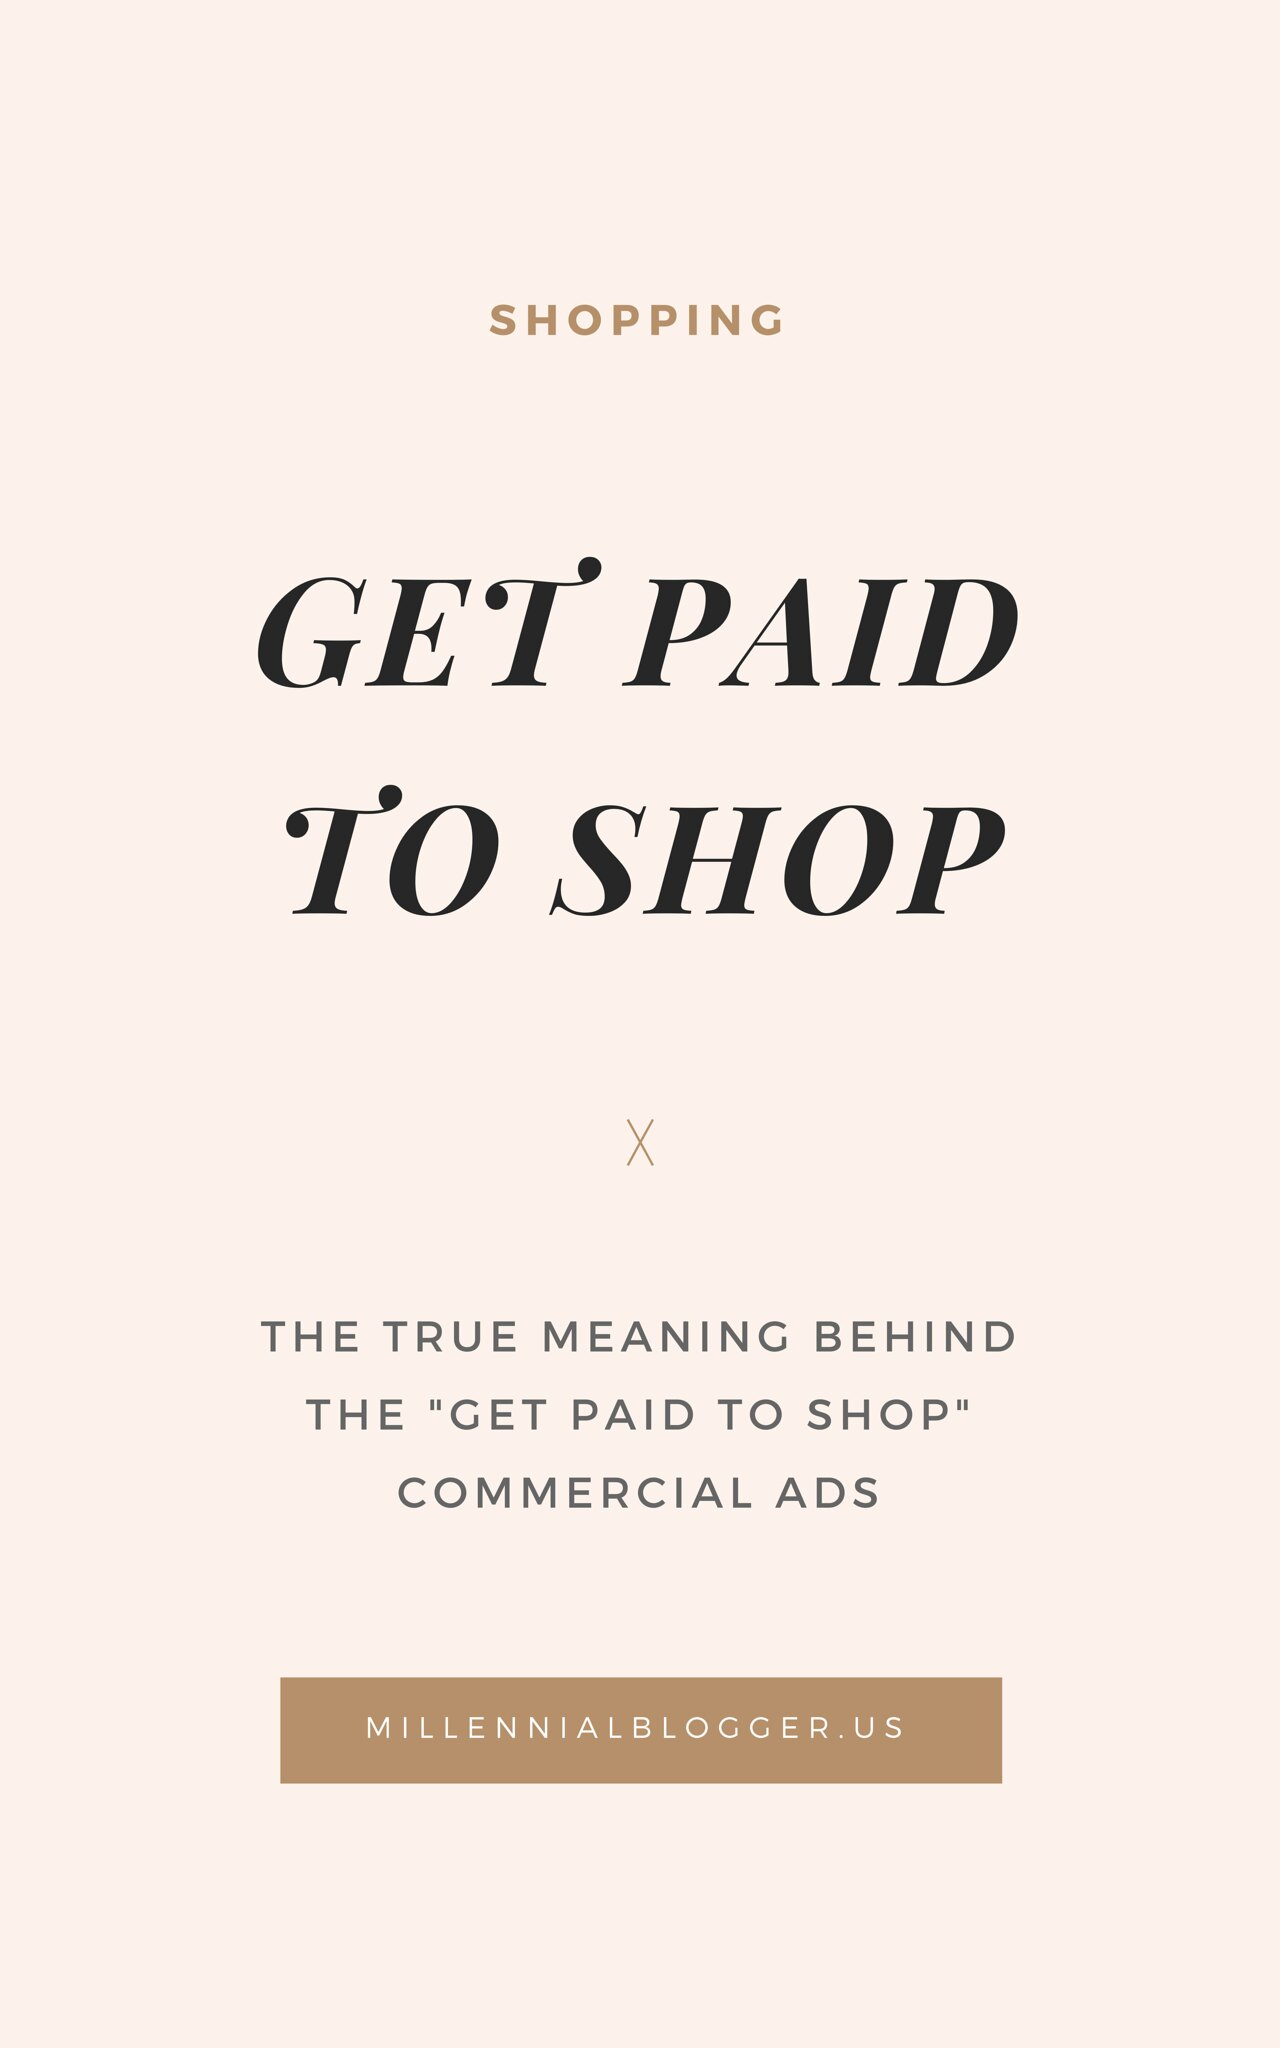 Get Paid To Shop - The True Meaning Behind It